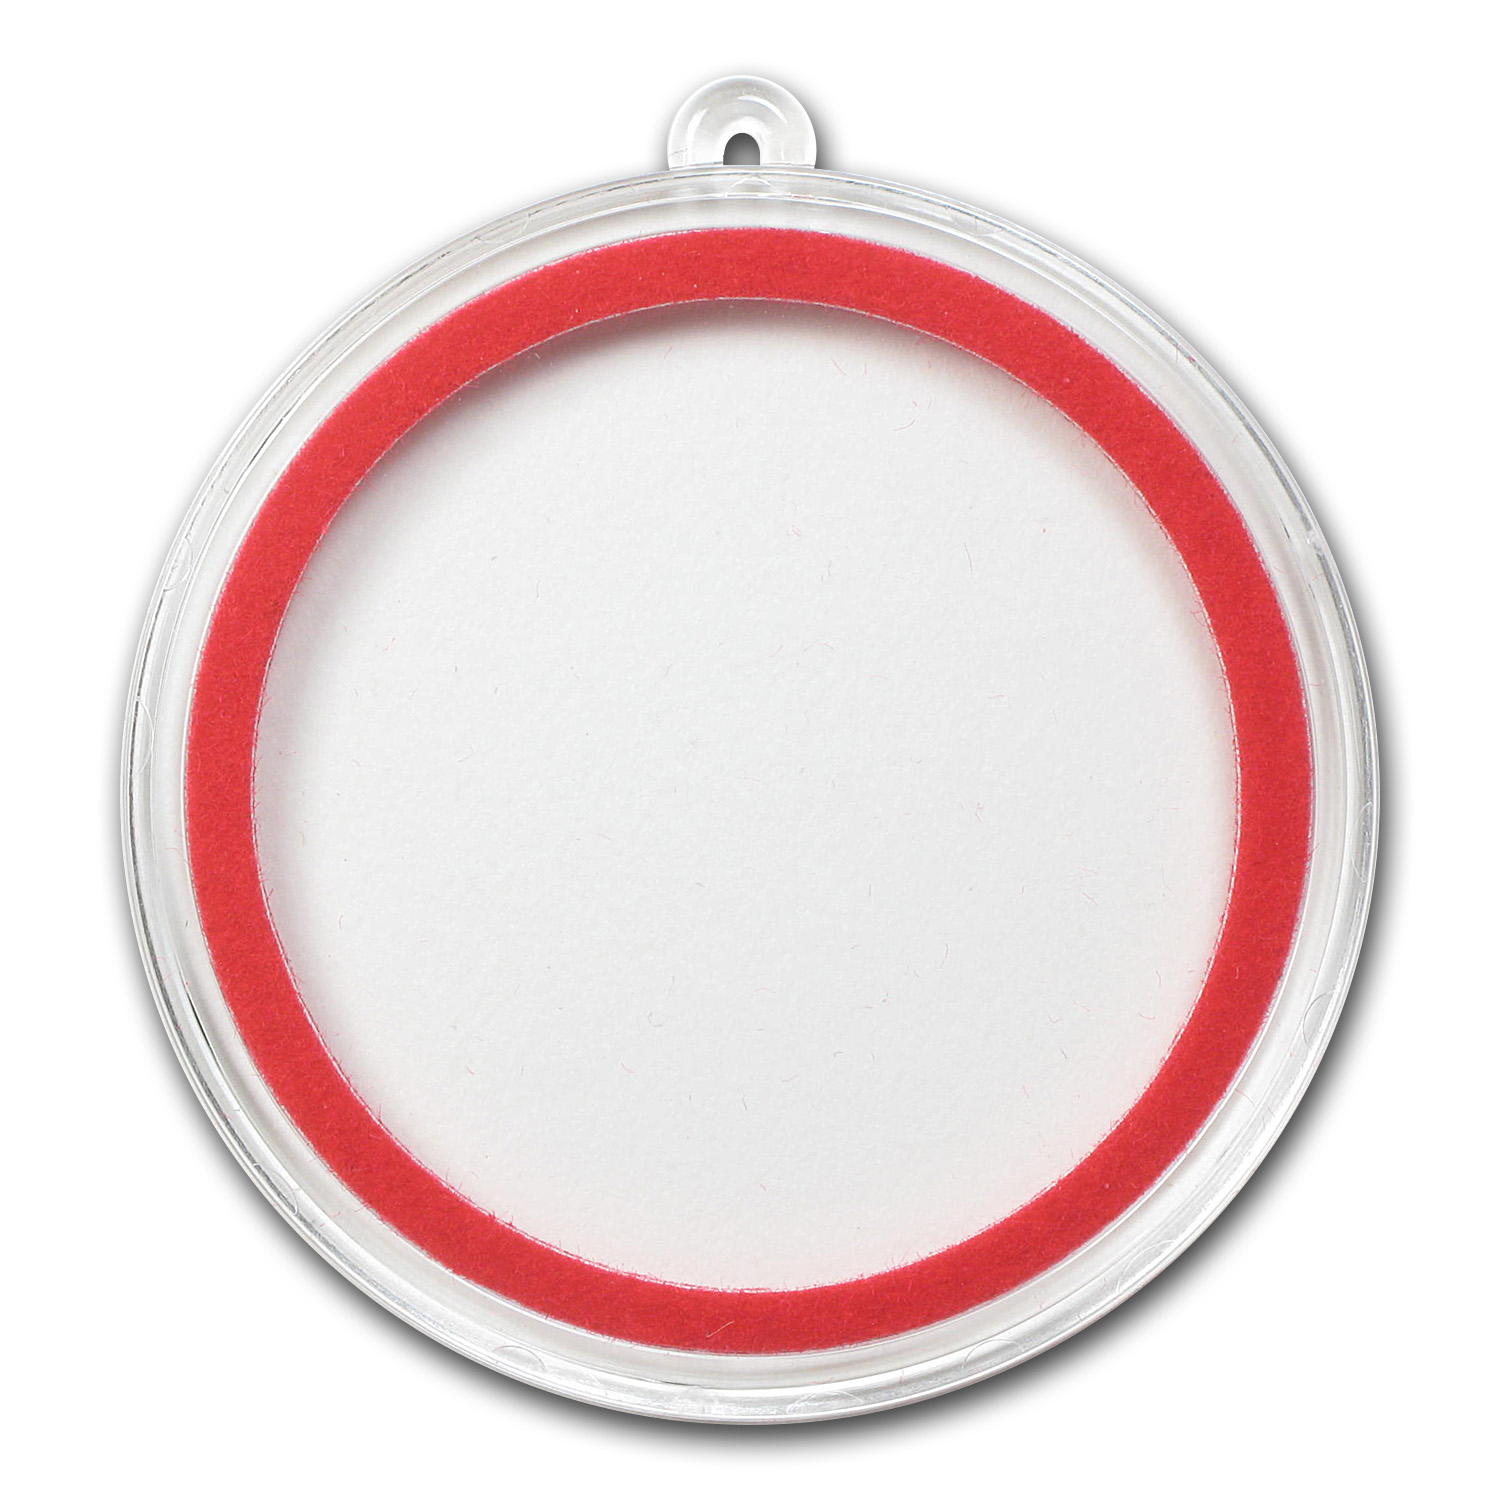 Ornament Capsule - 40 mm (Red Ring)